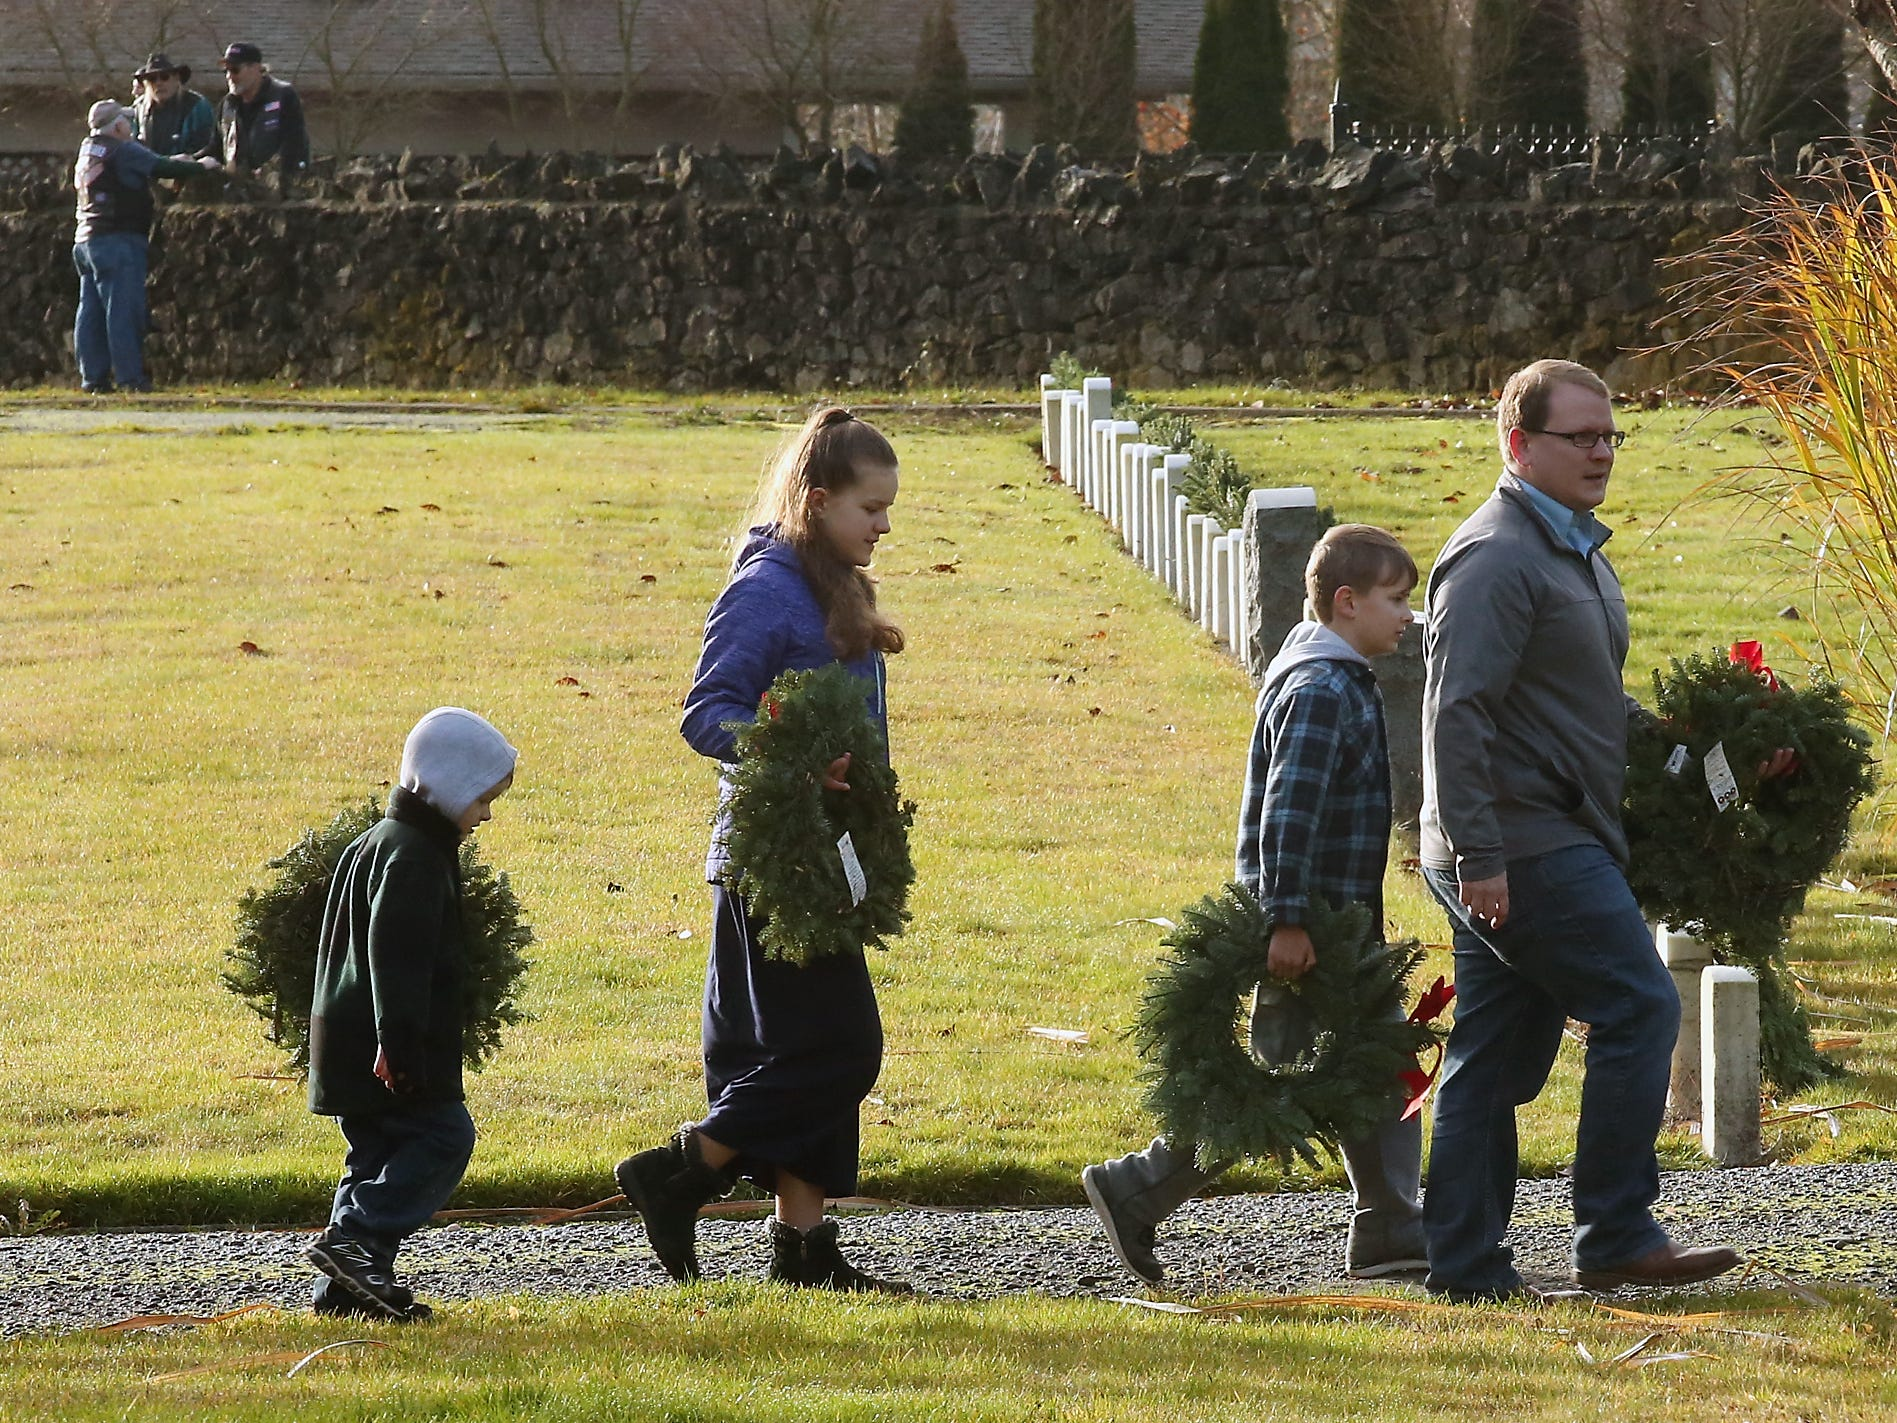 The Rossiter family (back to front) Ethan, Evelynn, Elijah, and father Brenden take part in the Wreaths Across America event at the Washington Veterans Home Cemetery in Port Orchard on Saturday, December 15, 2018.